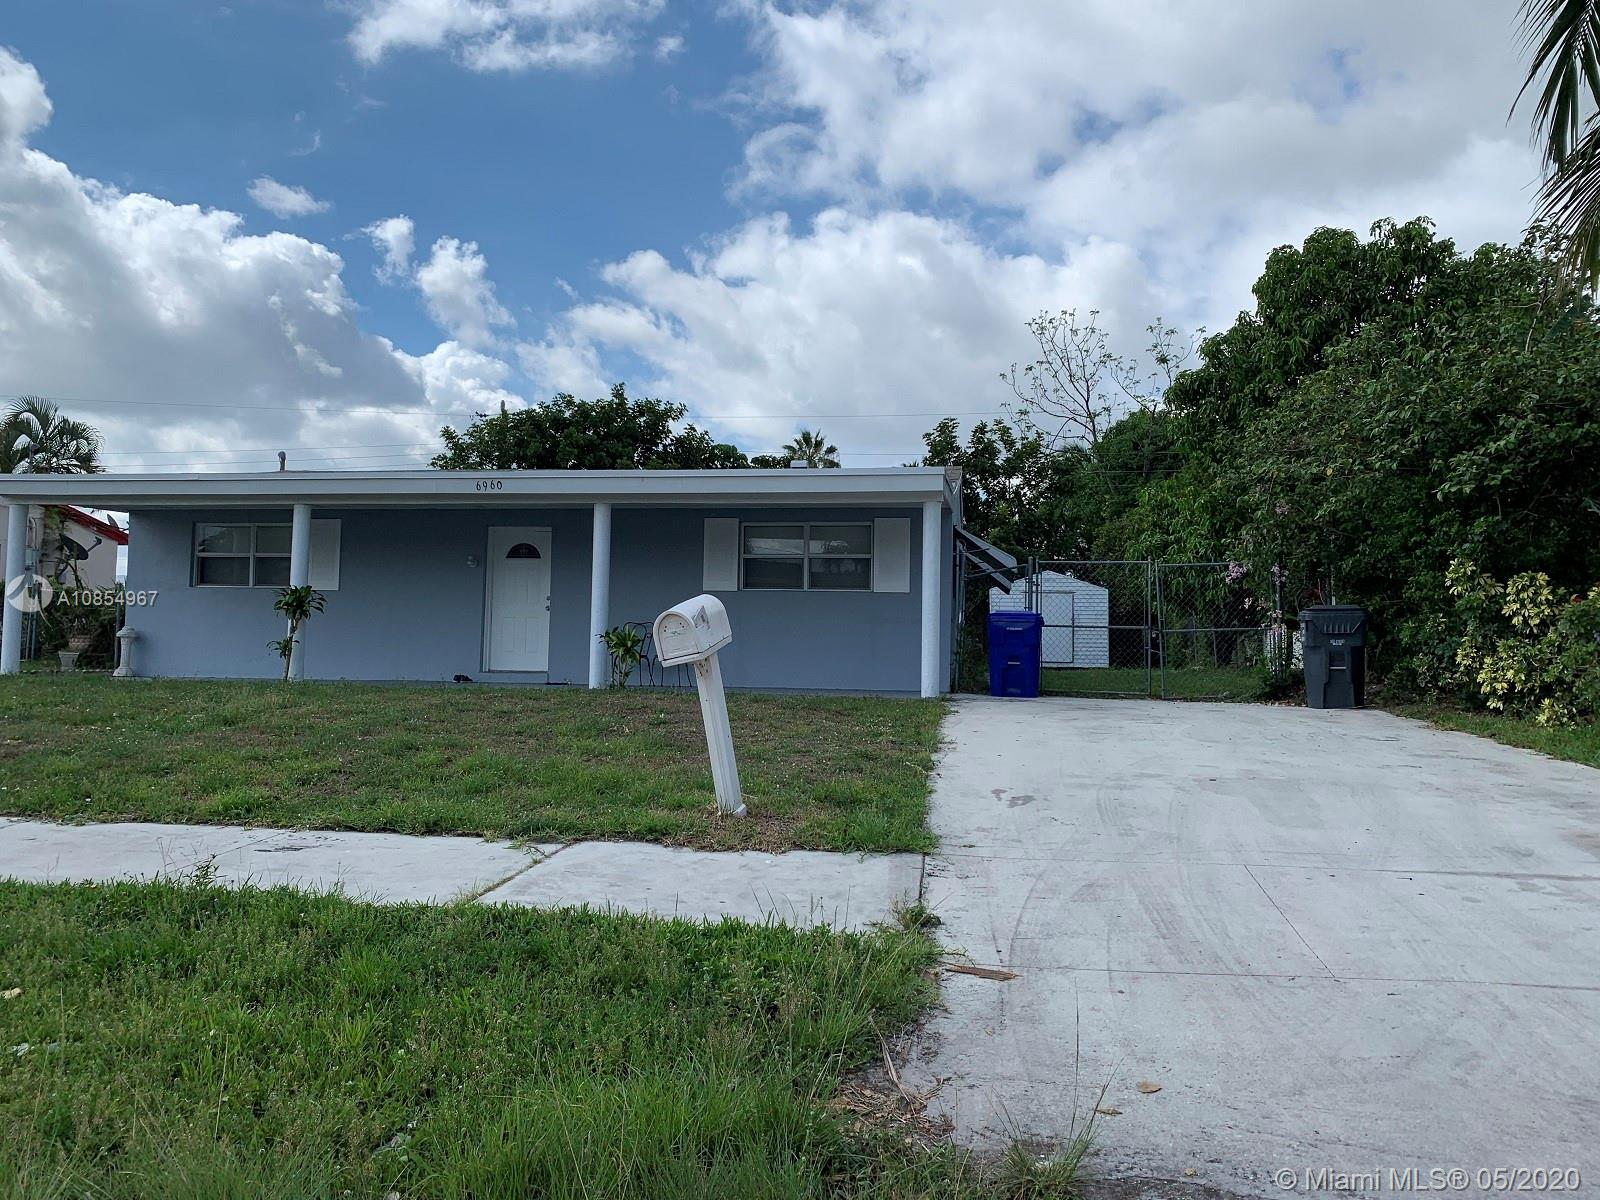 6960 Liberty St, Hollywood, Florida 33024, 4 Bedrooms Bedrooms, ,2 BathroomsBathrooms,Residential,For Sale,6960 Liberty St,A10854967